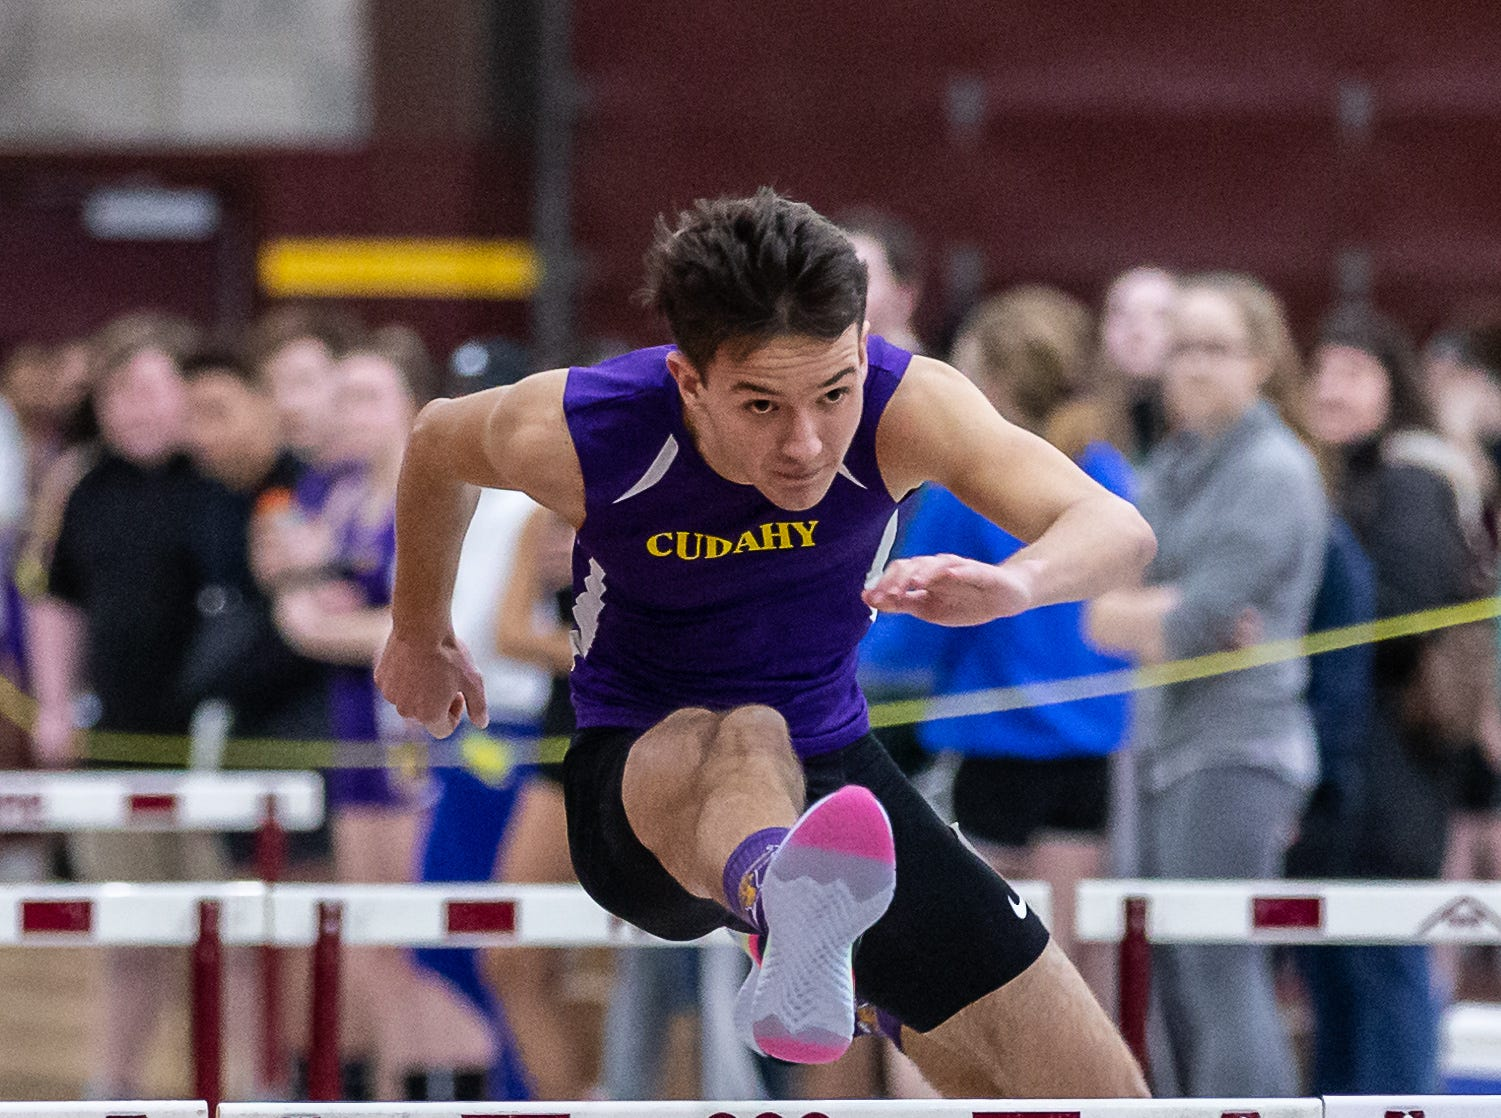 Cudahy's Isaac Guillama competes in the 55 meter hurdles at the Reinhard Bulldog Relays hosted by West Allis Central on Friday, March 15, 2019.